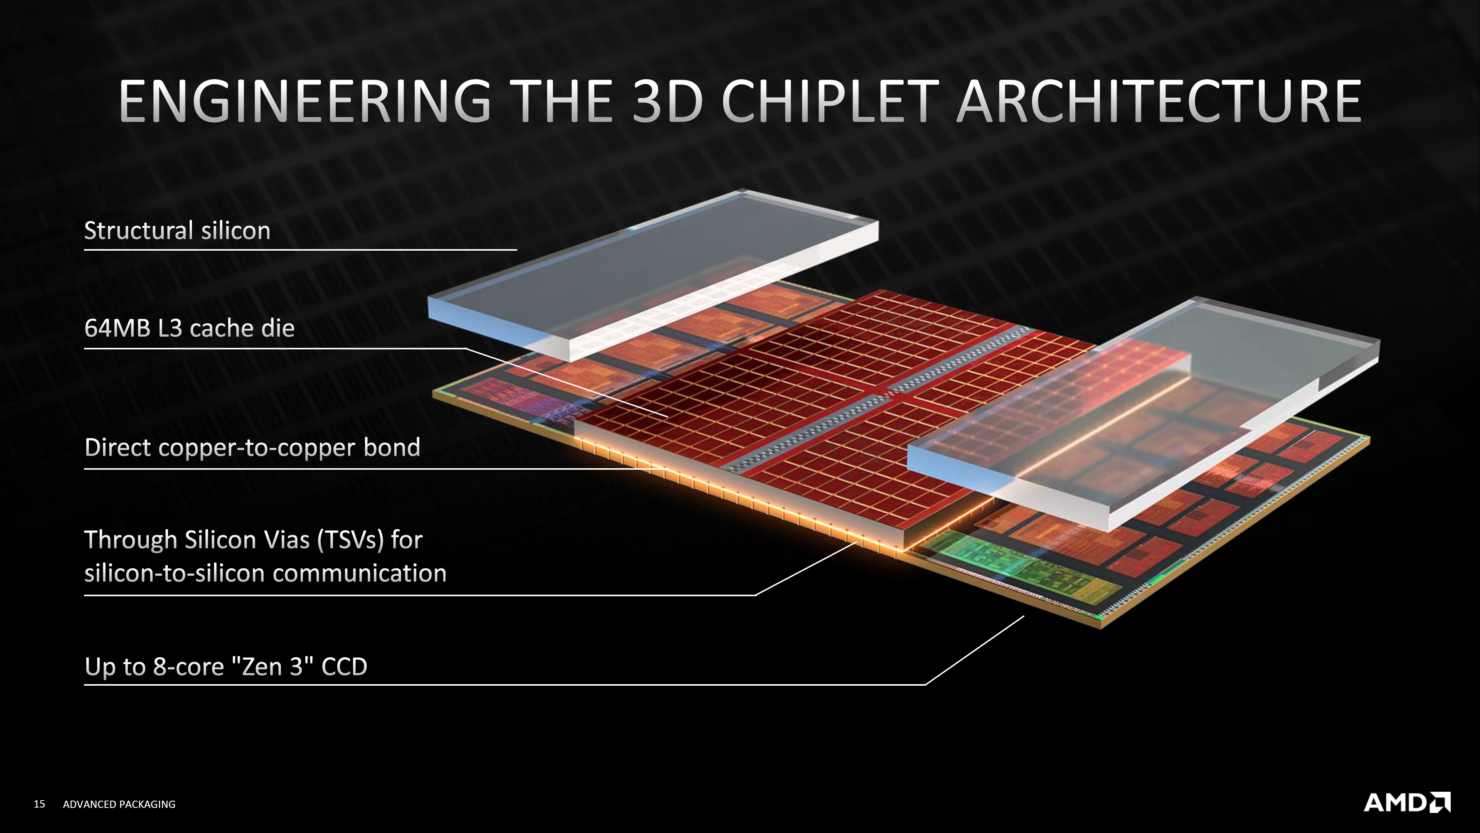 amd-advanced-3d-chiplet-packaging-3d-stacking-technologies-3d-v-cache-_14